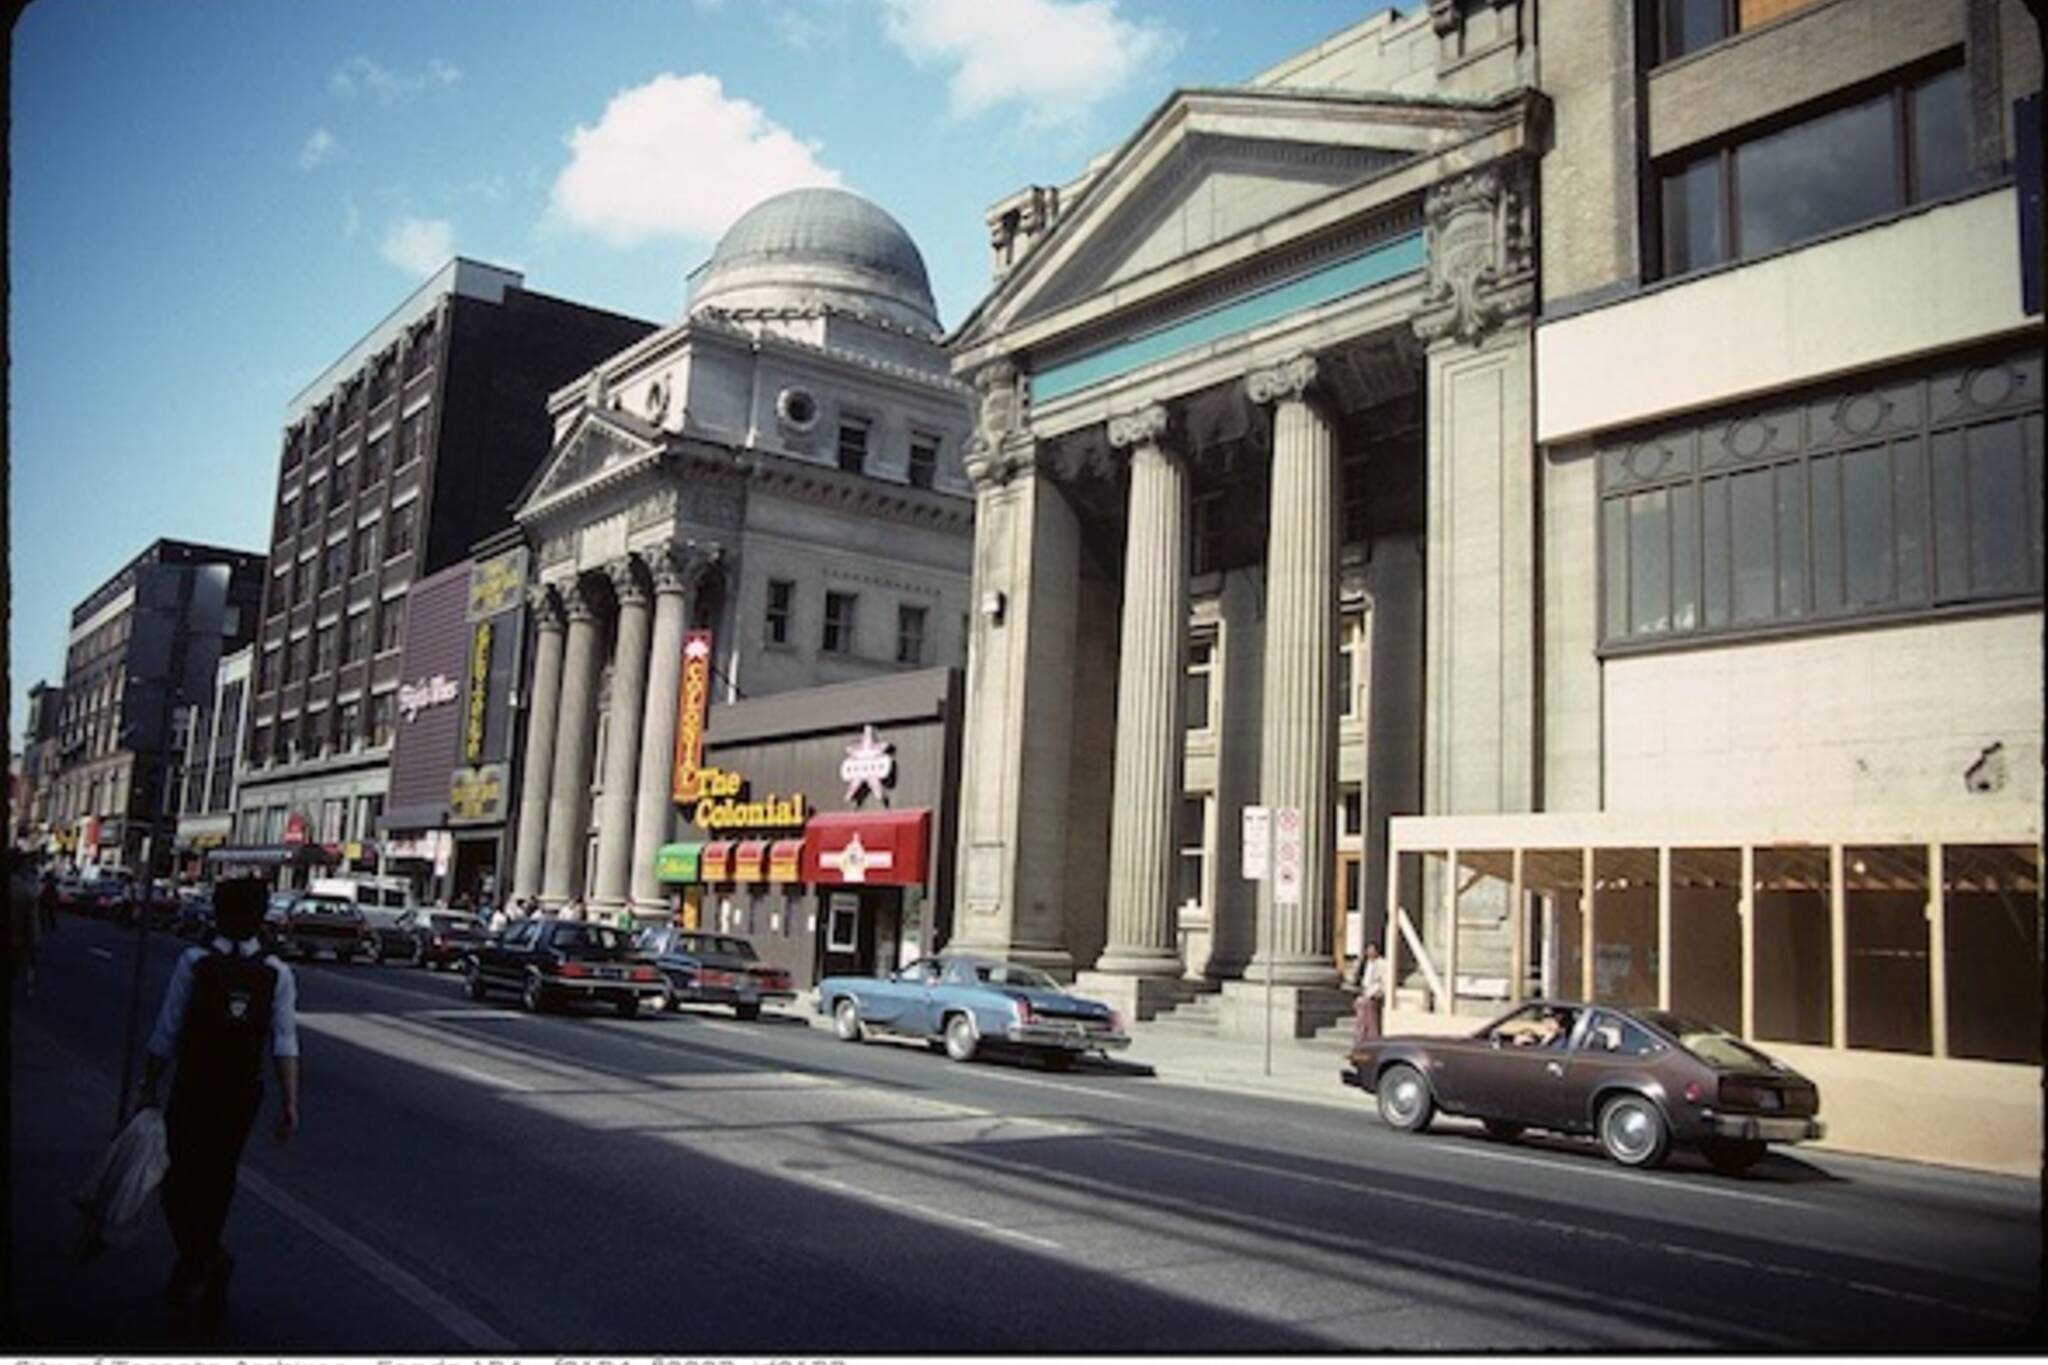 Yonge Bank 197 Massey Tower Colonial Tavern and Banks